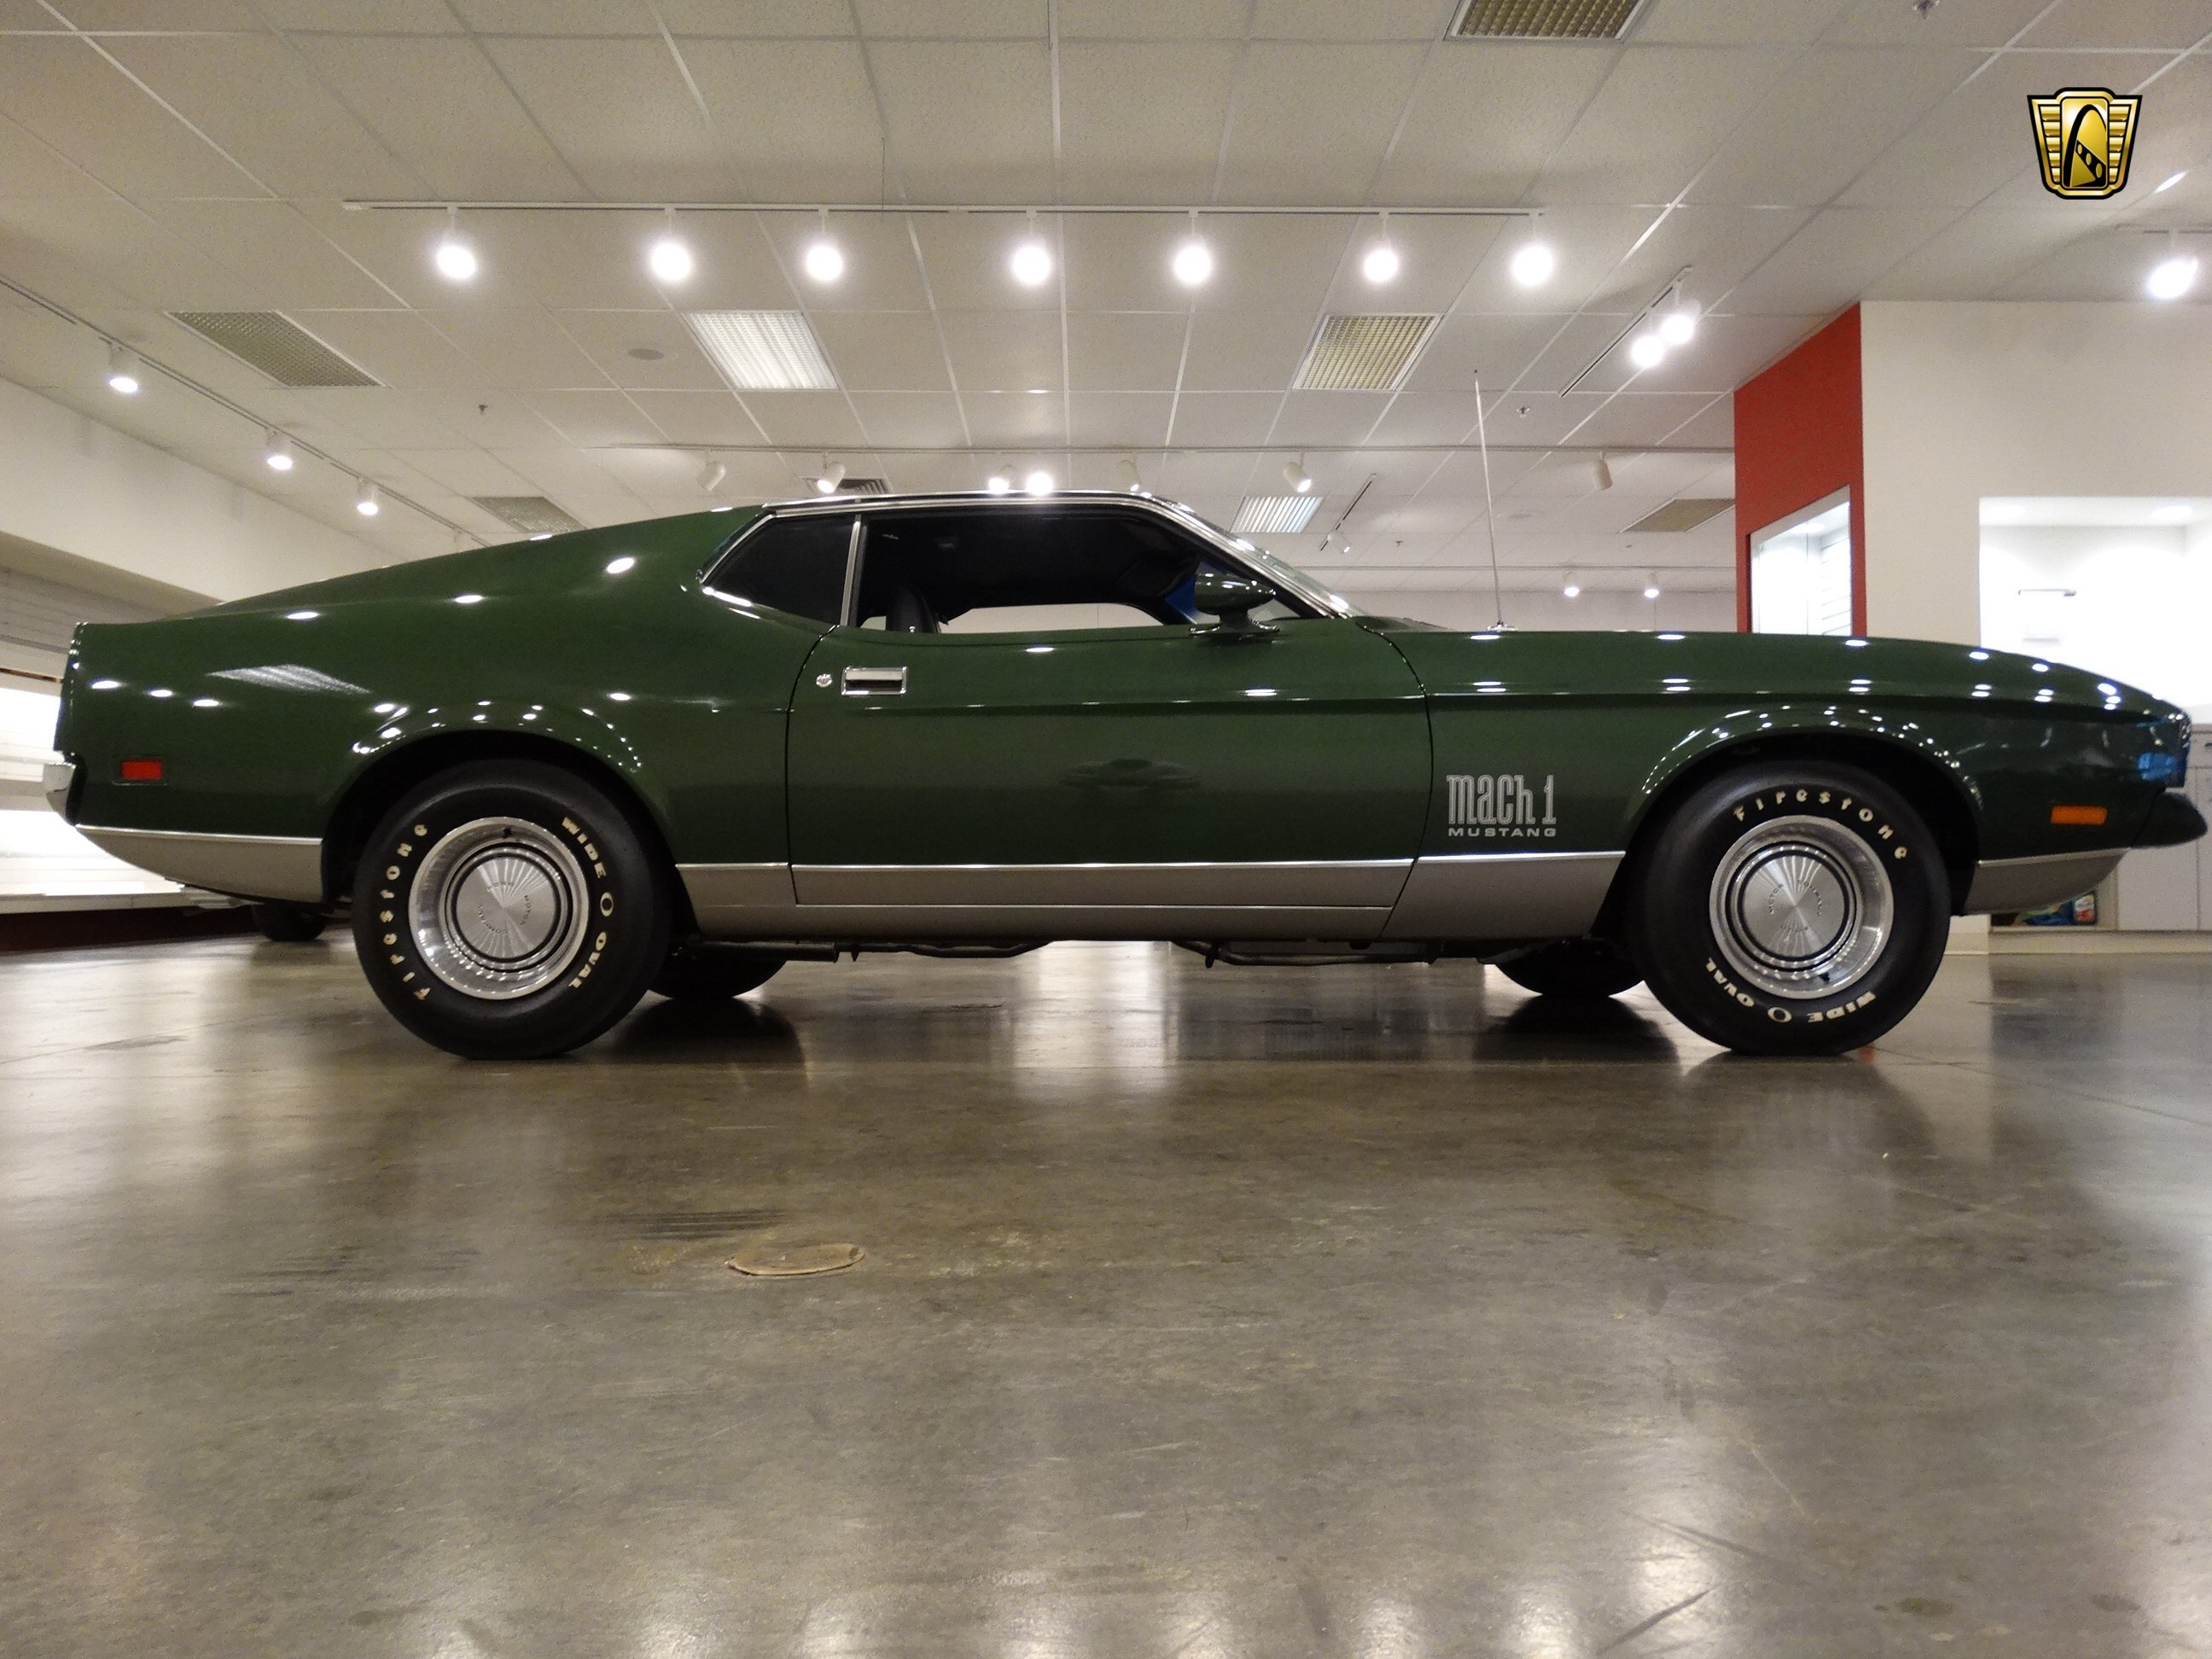 Hd Wallpapers Cars Mustang 1971 Ford Mustang Mach 1 Cars Green Coupe Usa Wallpaper